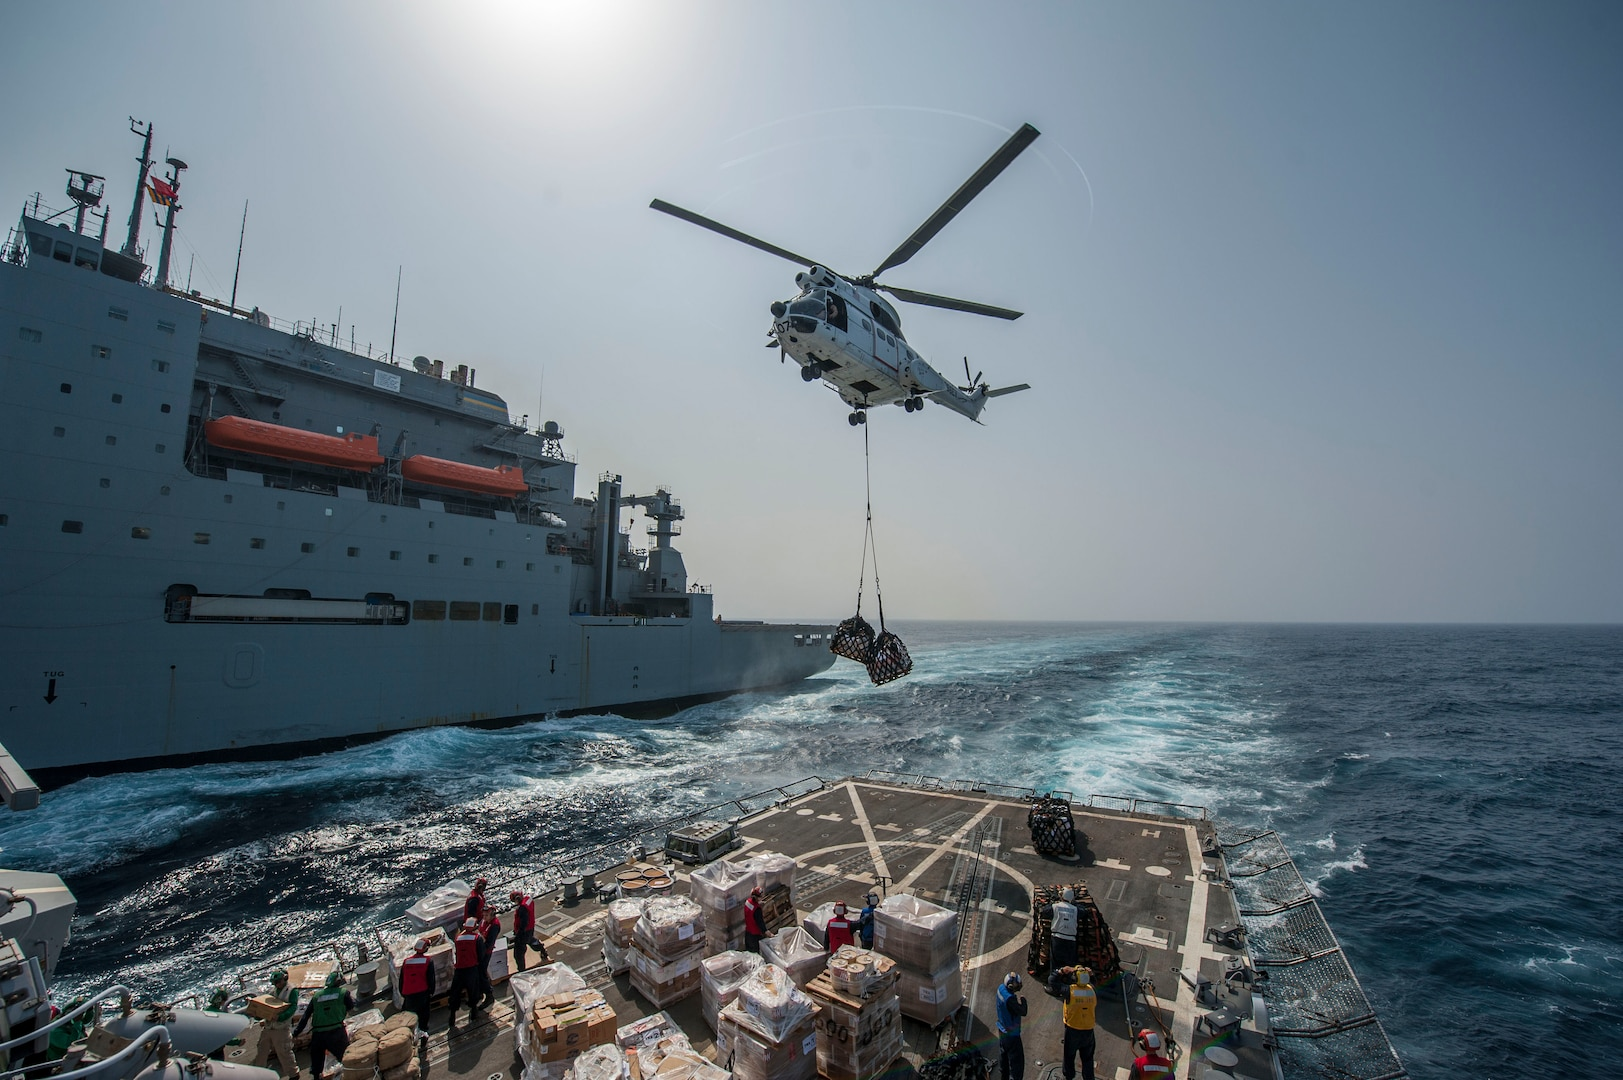 SA-330J Puma helicopter drops supplies on flight deck of USS Truxtun during vertical replenishment with Military Sealift Command dry cargo and ammunition ship USNS Richard E. Byrd, Red Sea, April 12, 2014 (U.S. Navy/Scott Barnes)